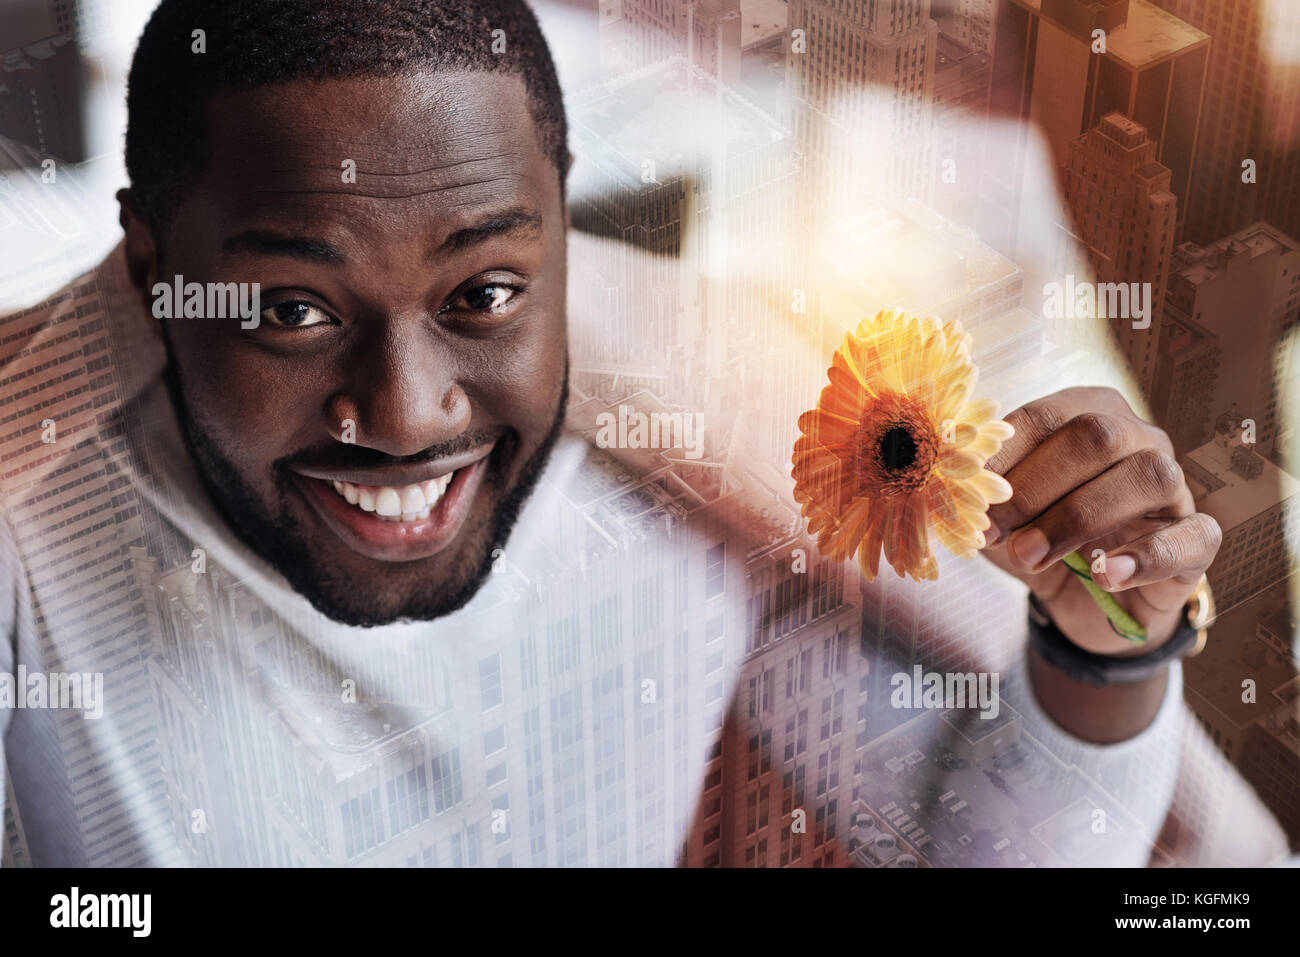 Inspired smiling young man with a flower - Stock Image